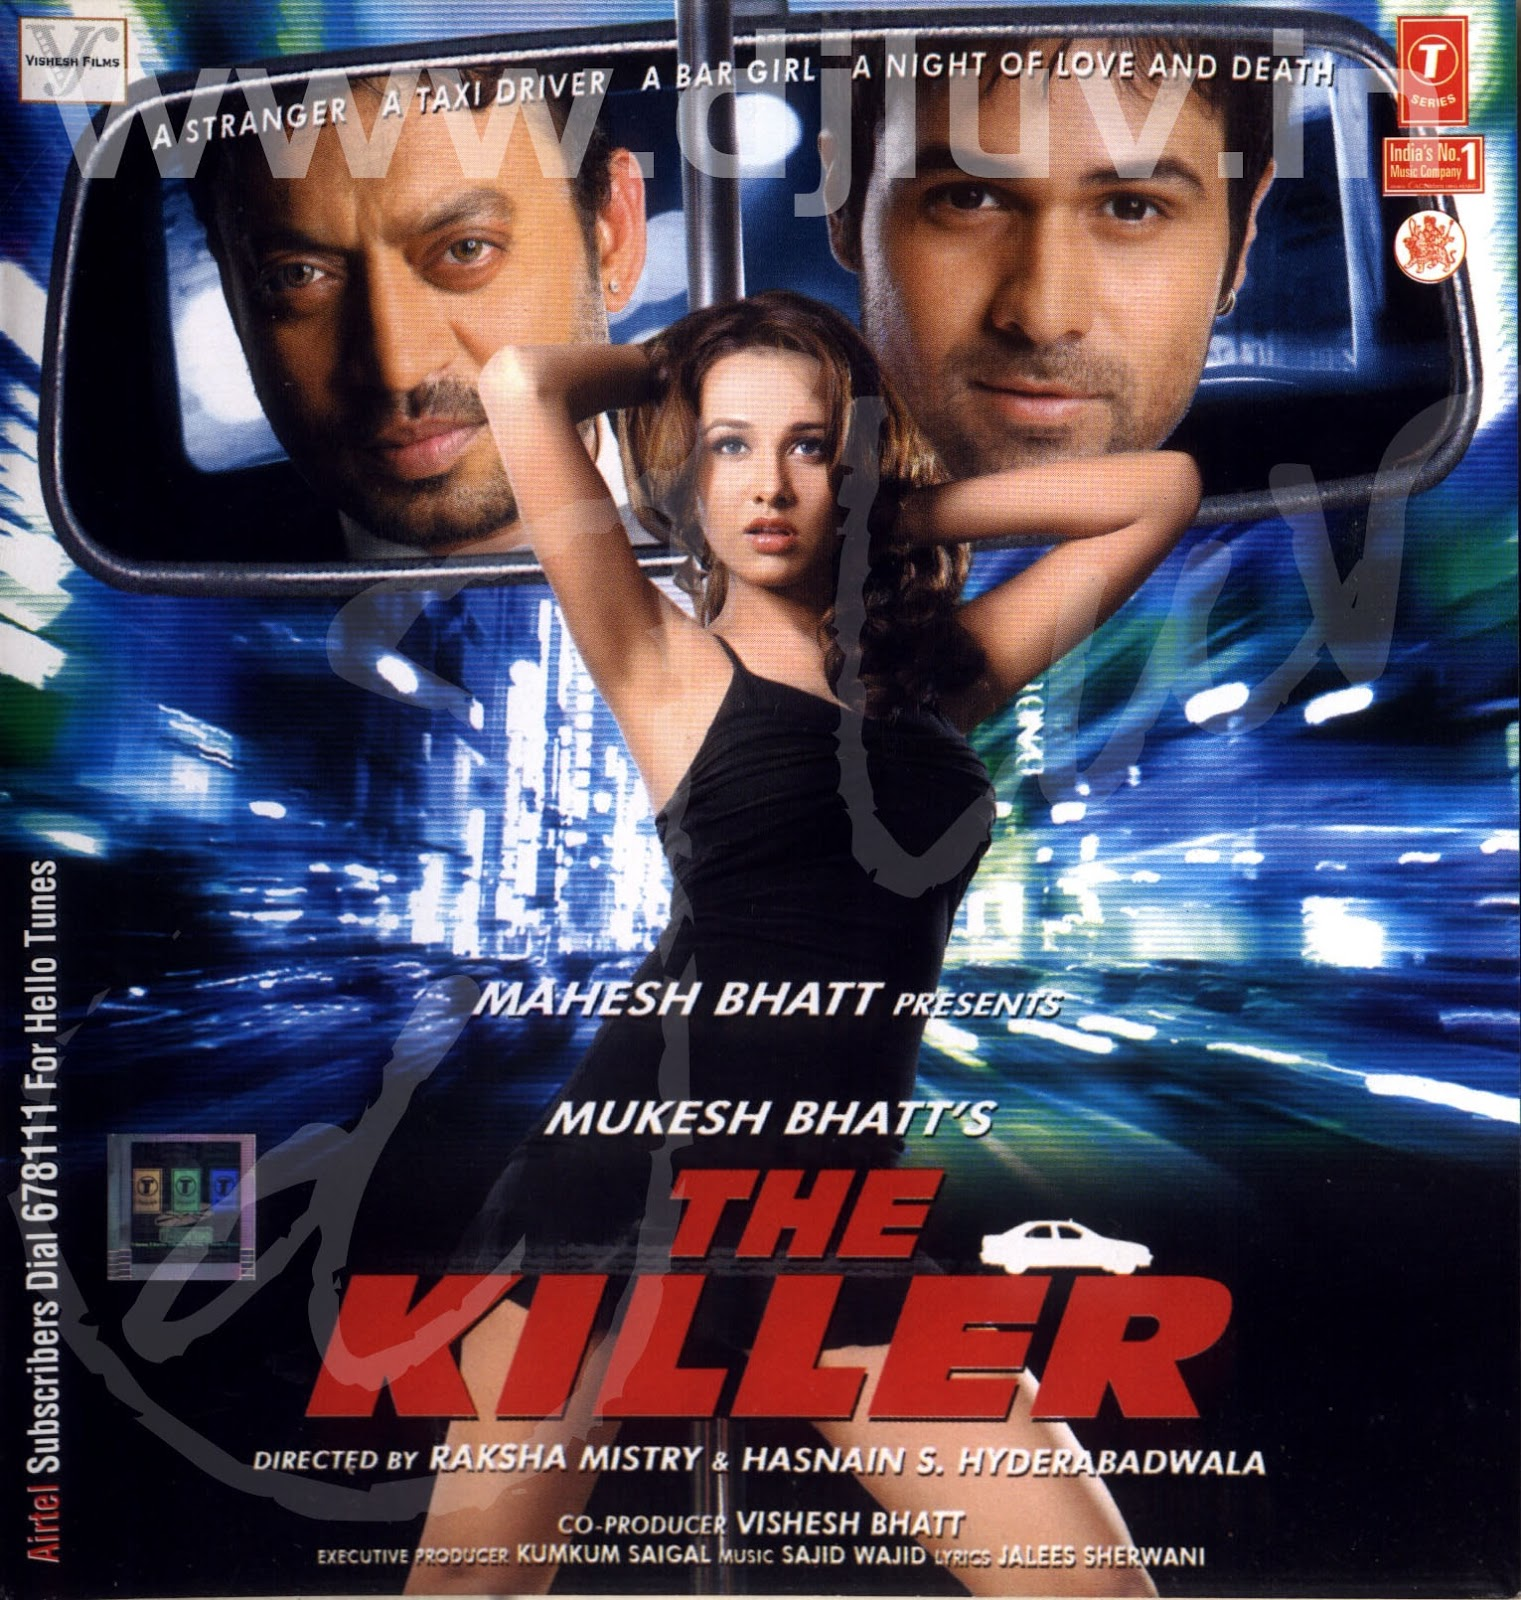 The killer songs mp3 download